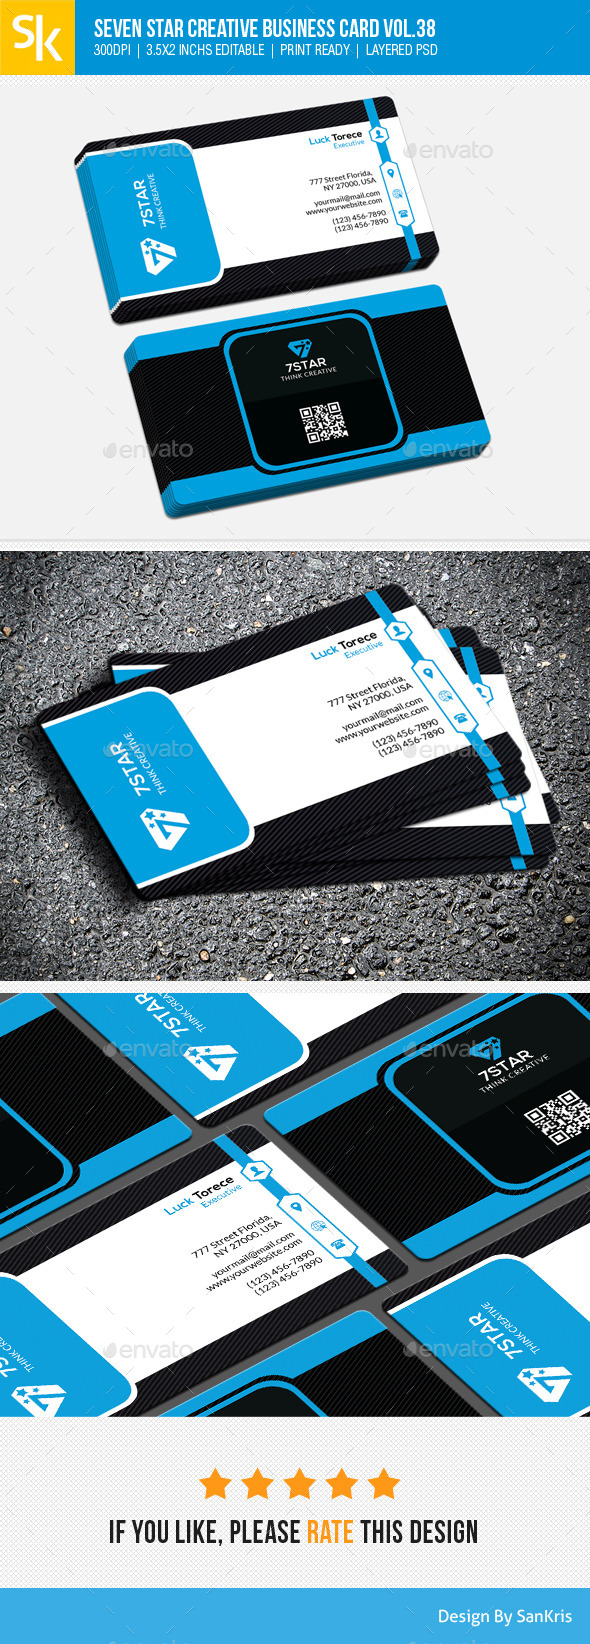 Seven Star Creative Business Card Vol.38 - Creative Business Cards